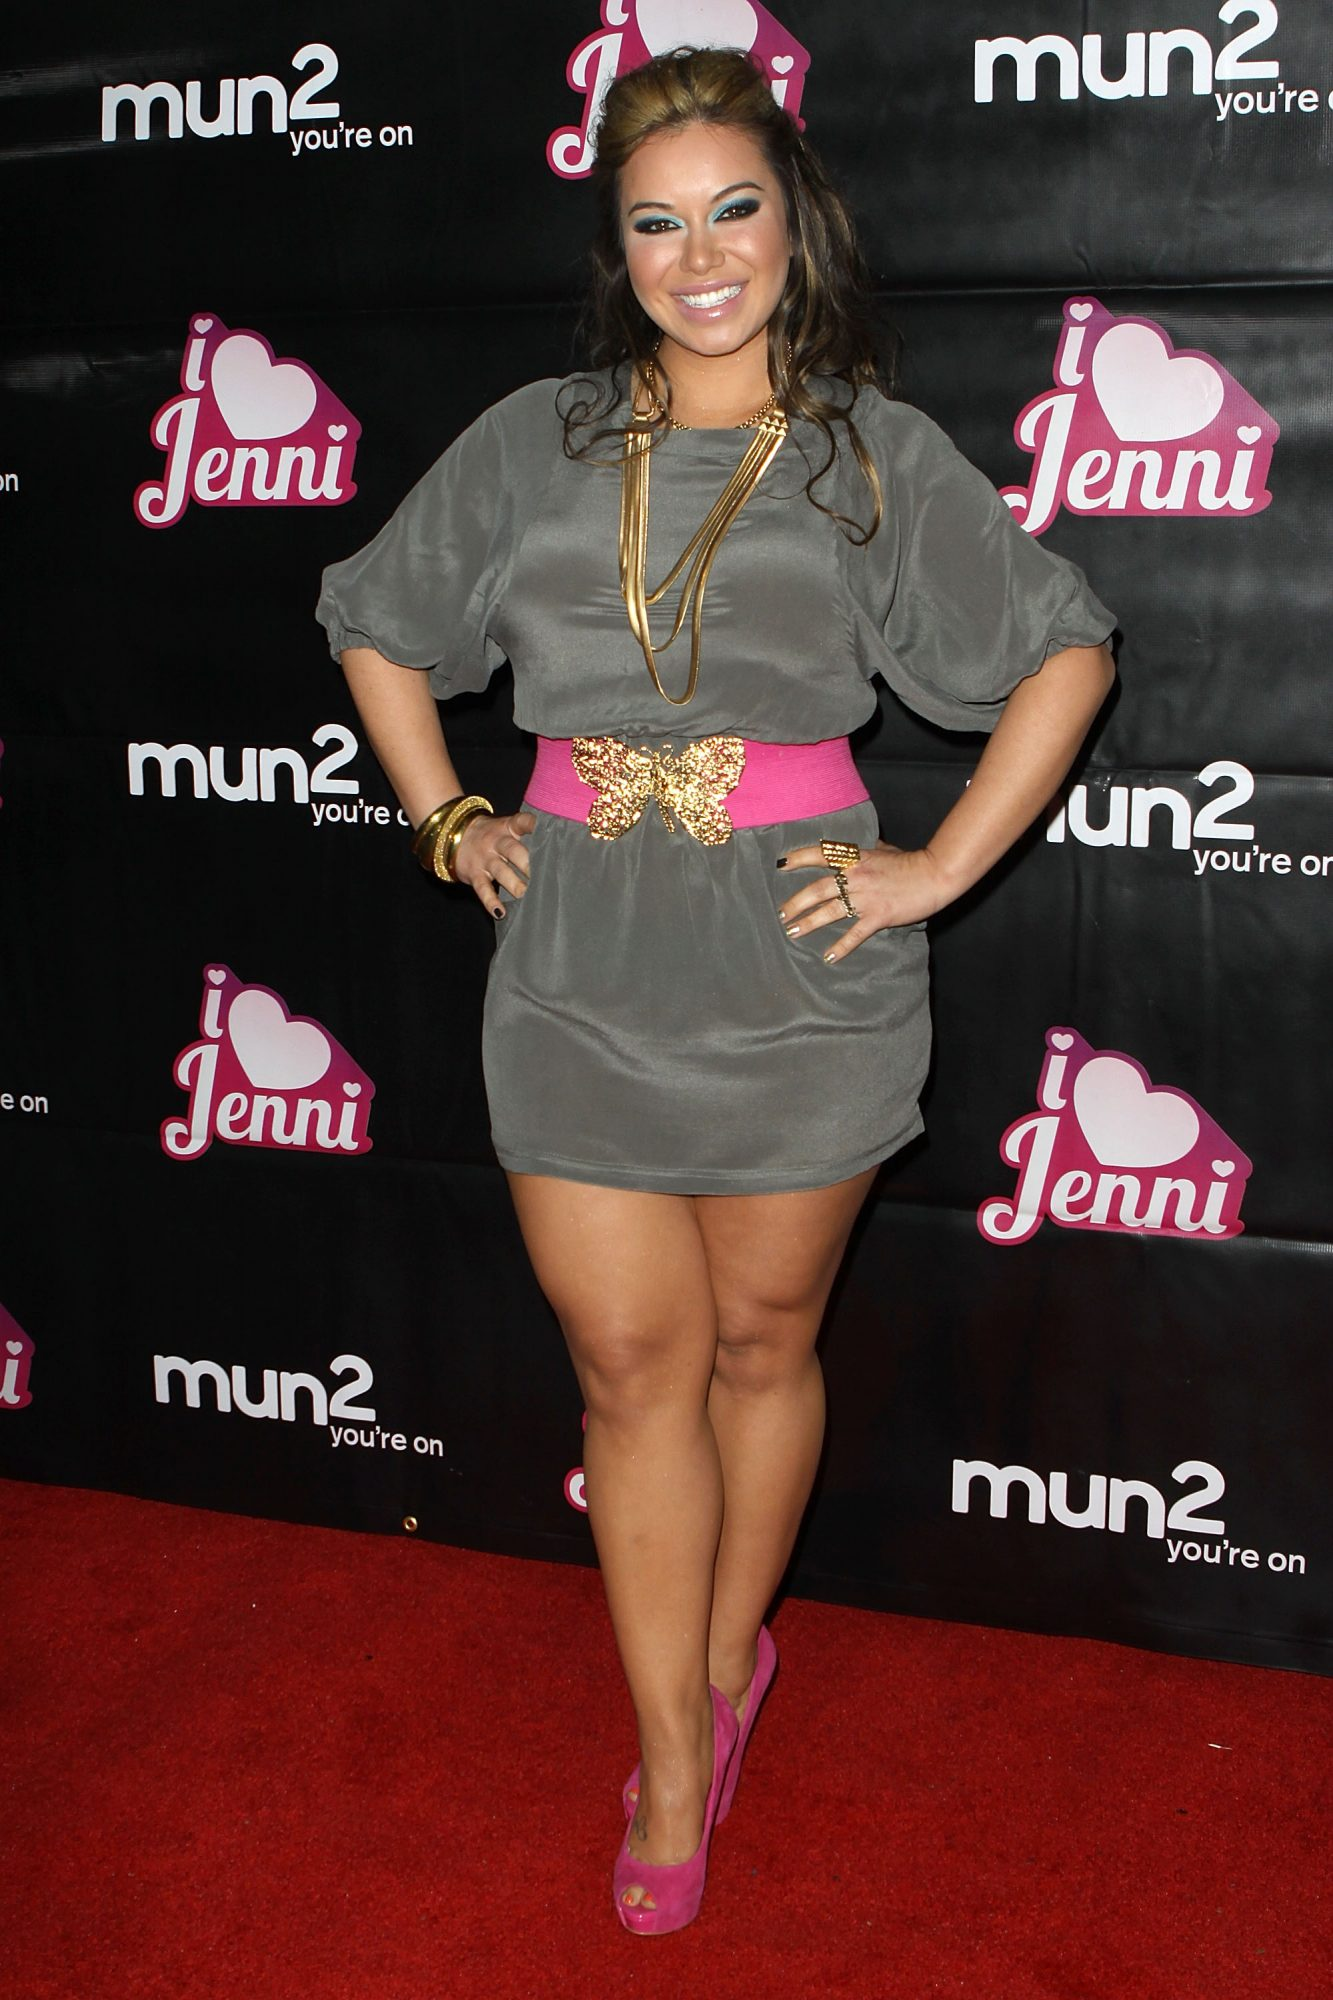 "Premiere Of mun2's ""I Love Jenni"" Reality Series"